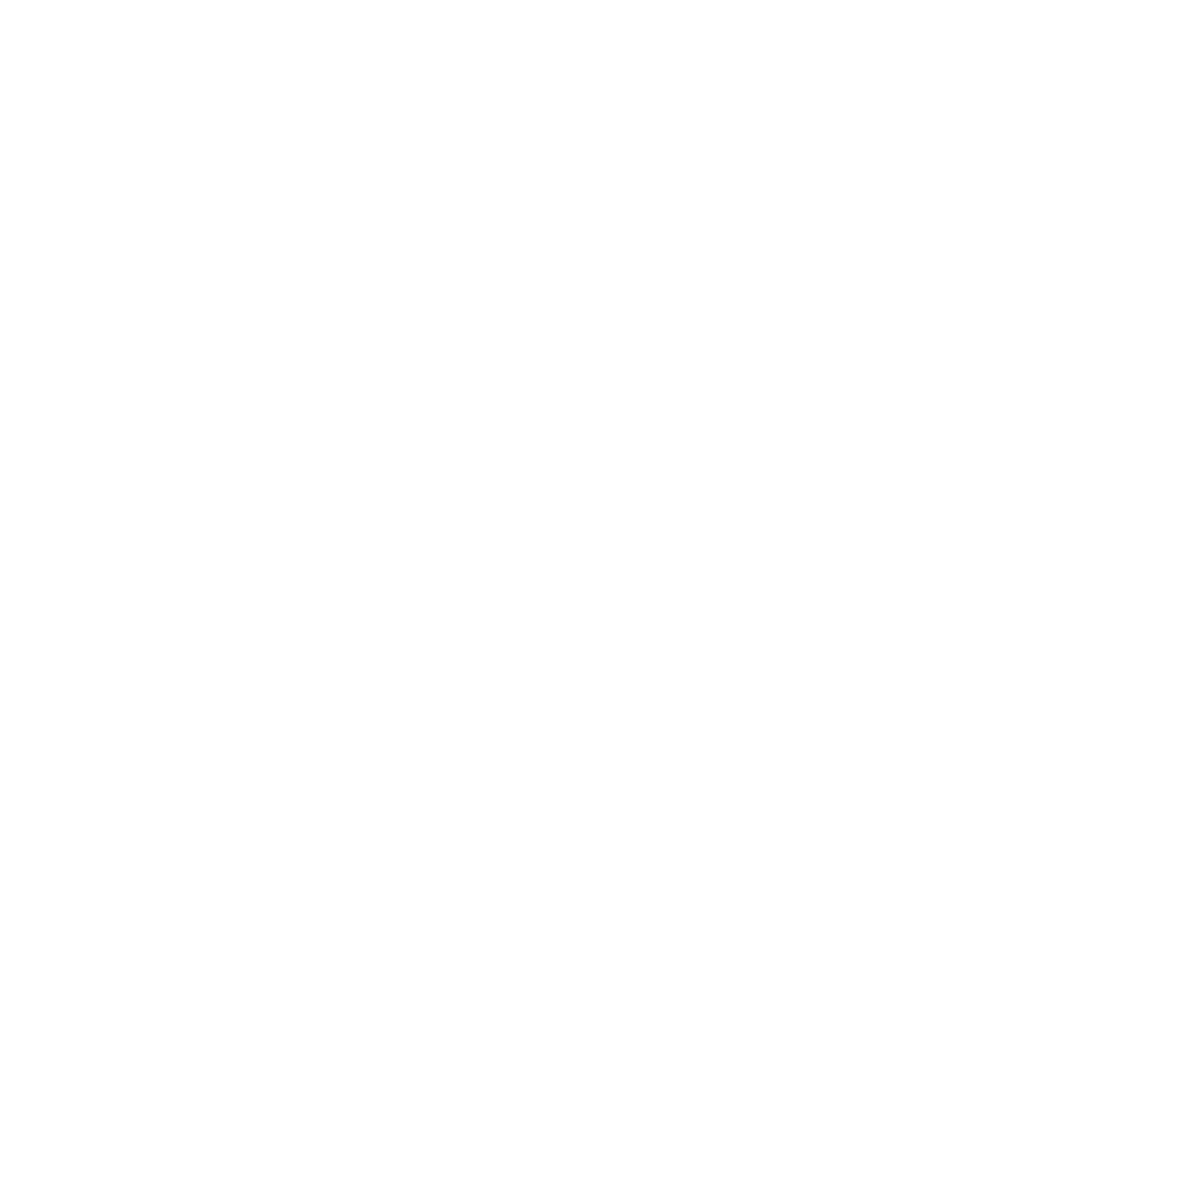 Hometown church of Christ